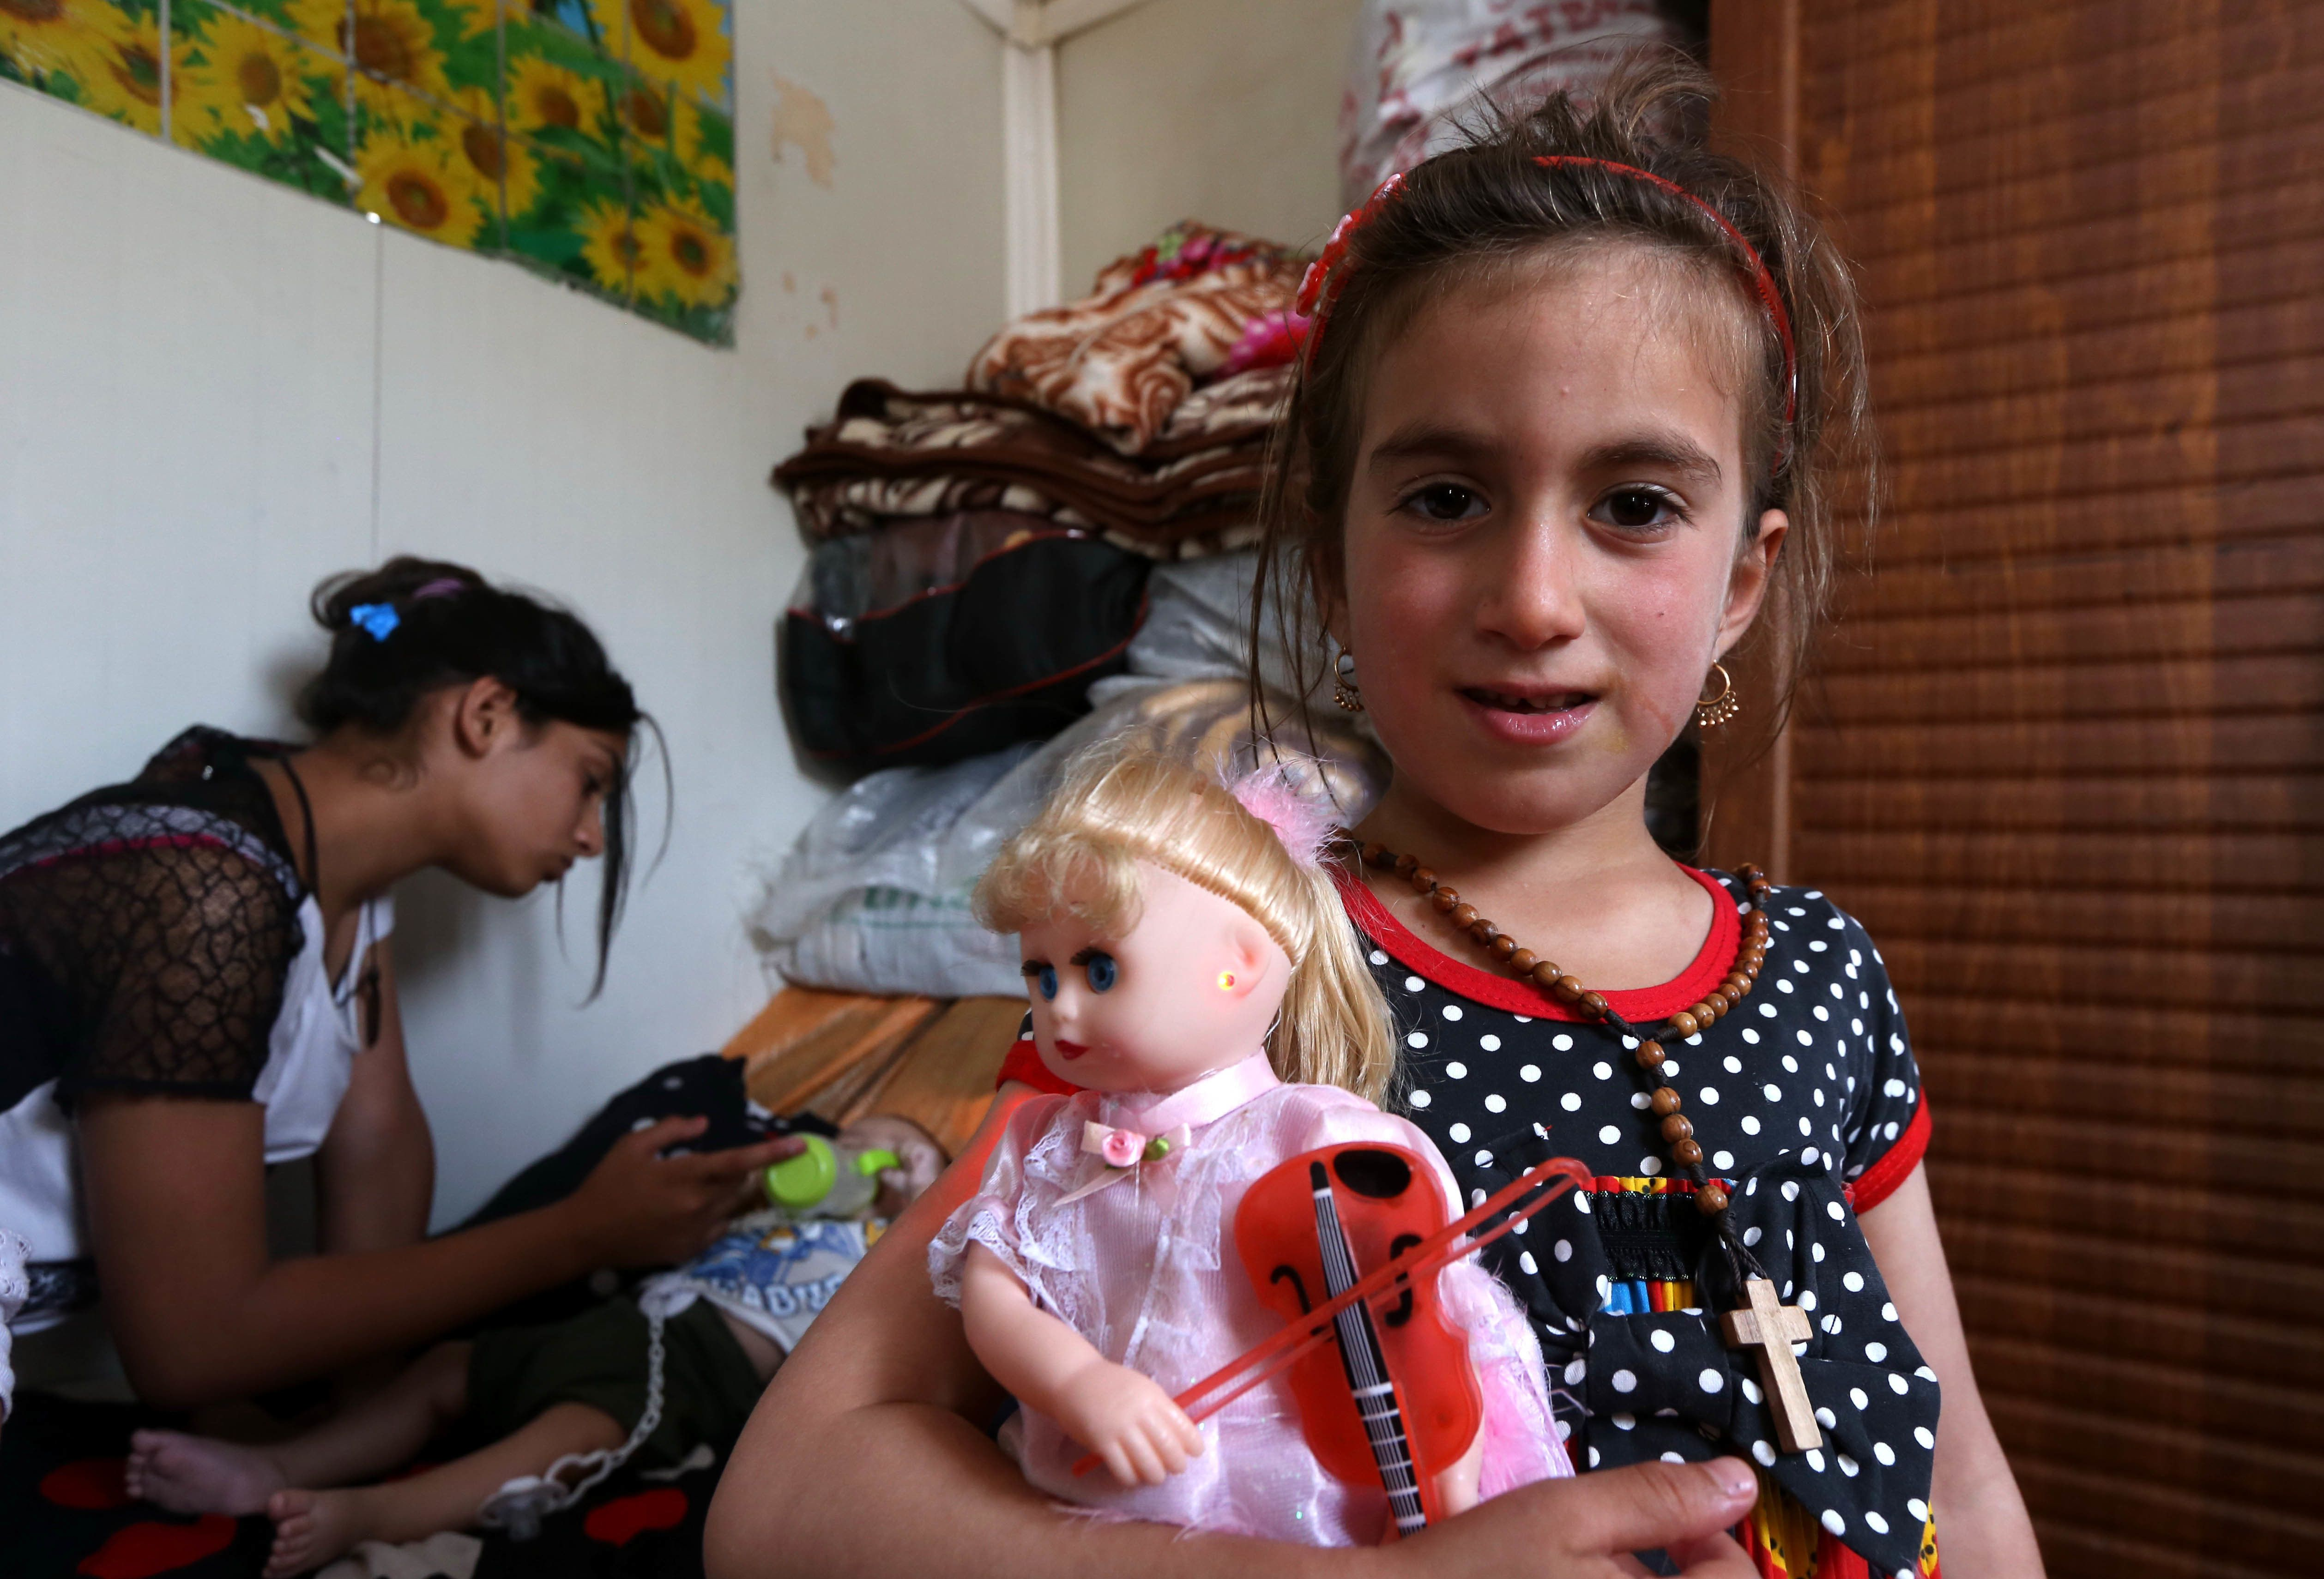 Christena, a 6-year-old Iraqi Christian girl, holds a doll during a meeting with her family at a camp for displaced Christian